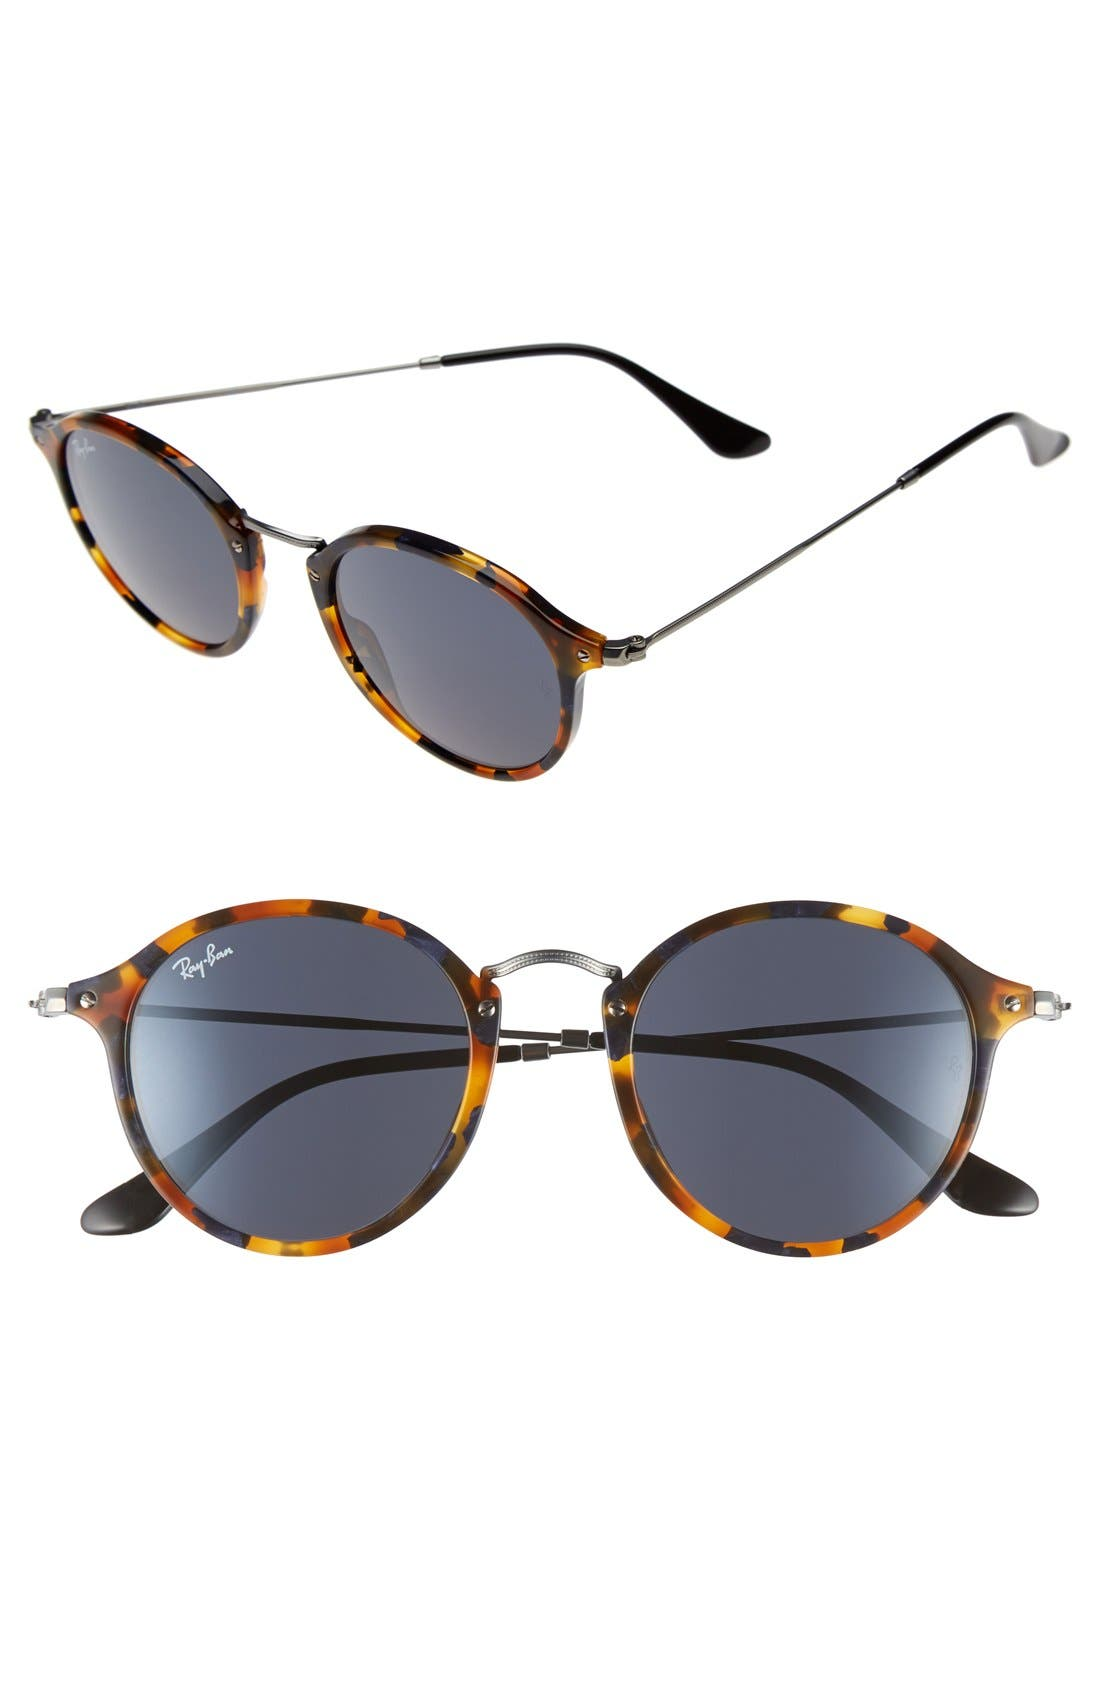 Ray-Ban 49mm Retro Sunglasses